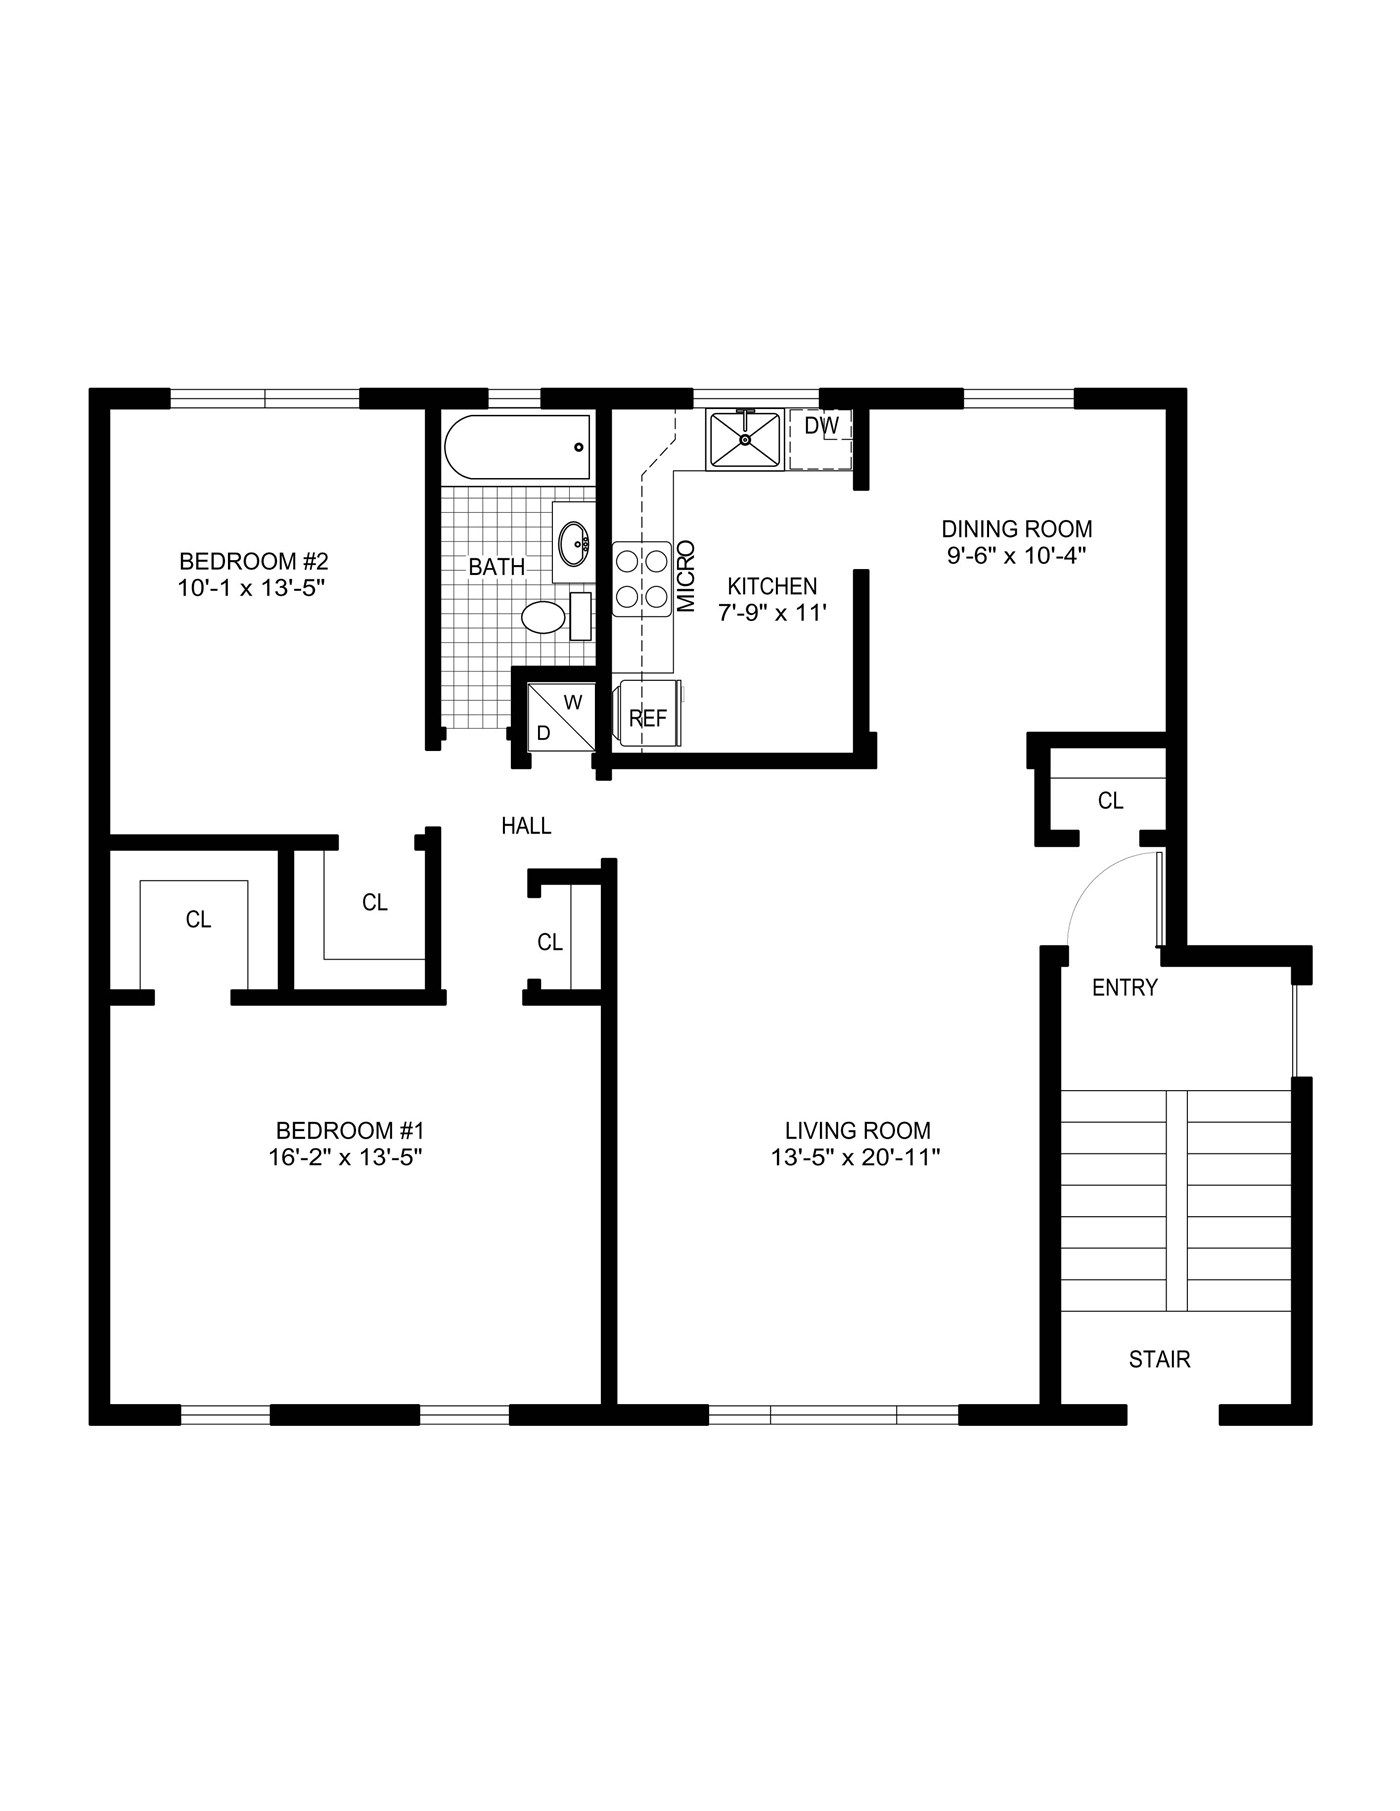 Simple House Floor Plans Family House Plans House Floor Plans